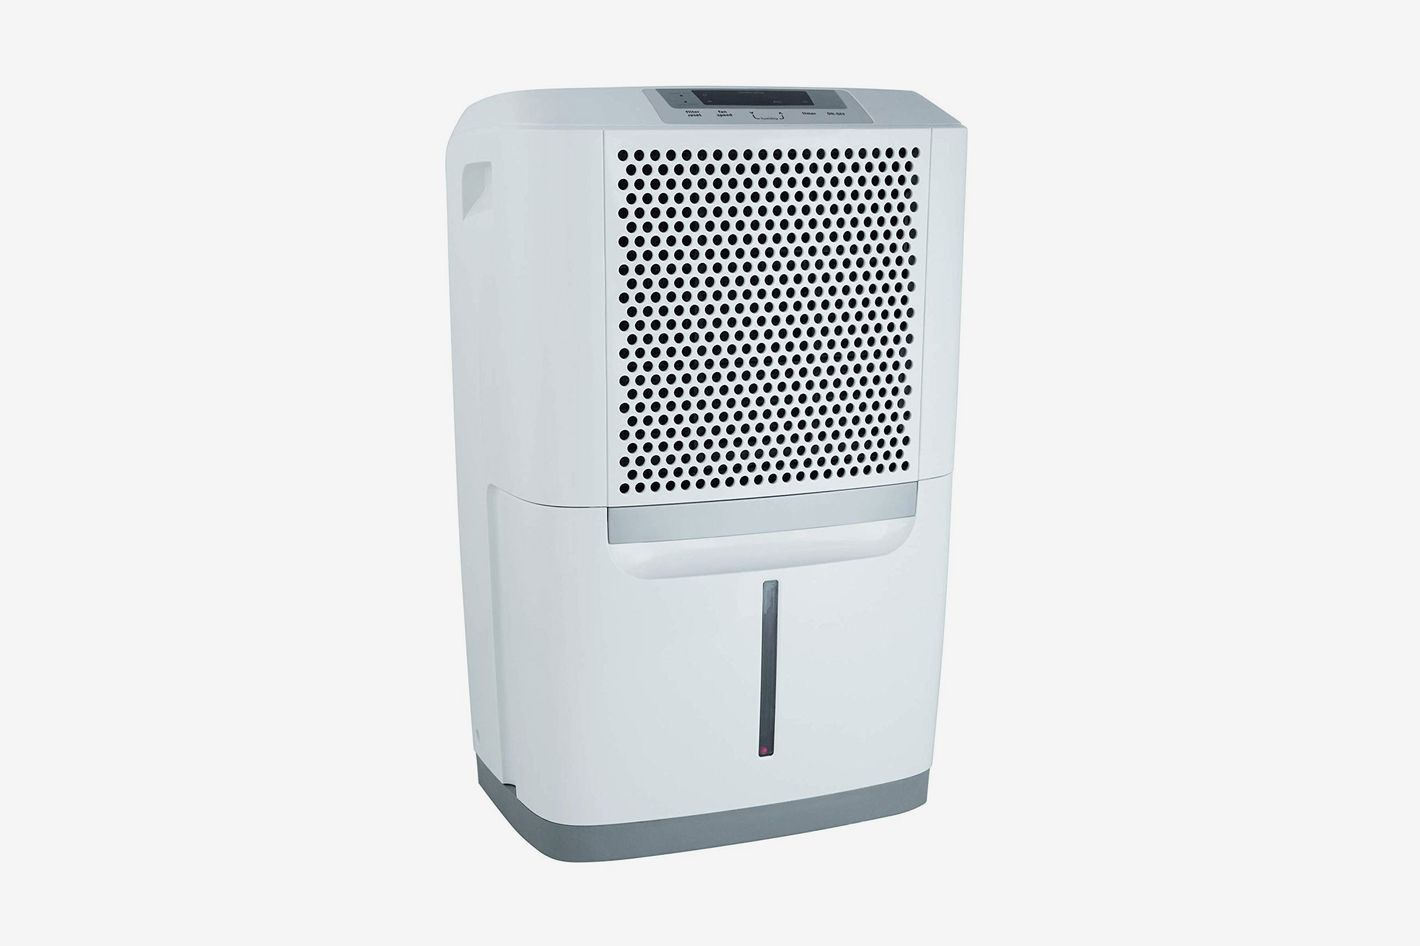 Frigidaire FAD704DWD Energy Star 70-pint Dehumidifier With Effortless Humidity Control